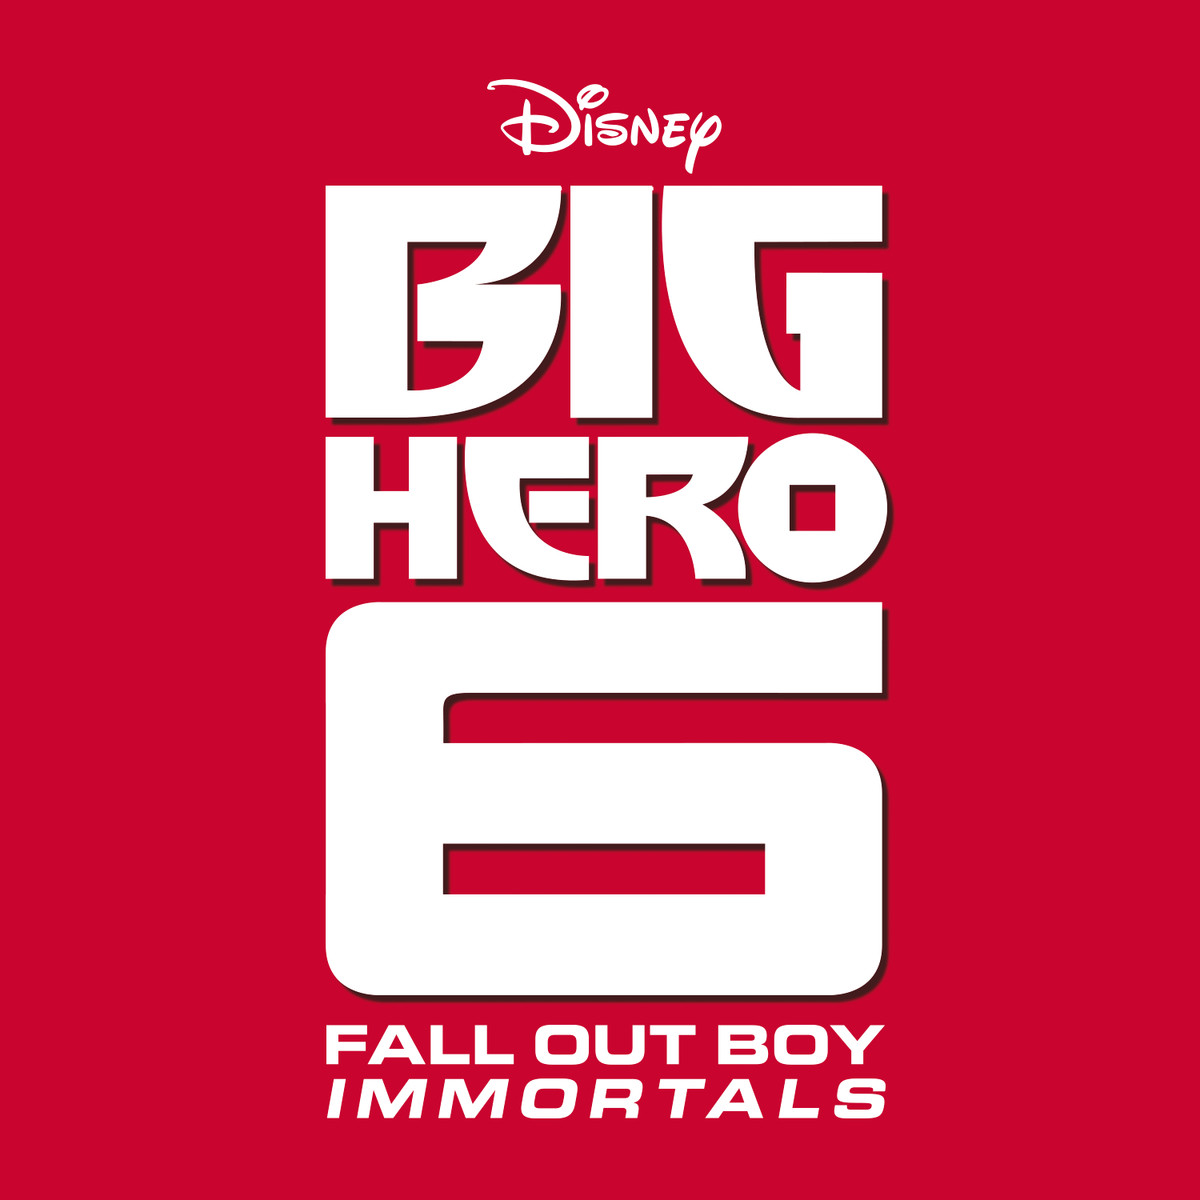 Big hero 6 credits scene they are not only books - Big Hero 6 Credits Scene They Are Not Only Books 46